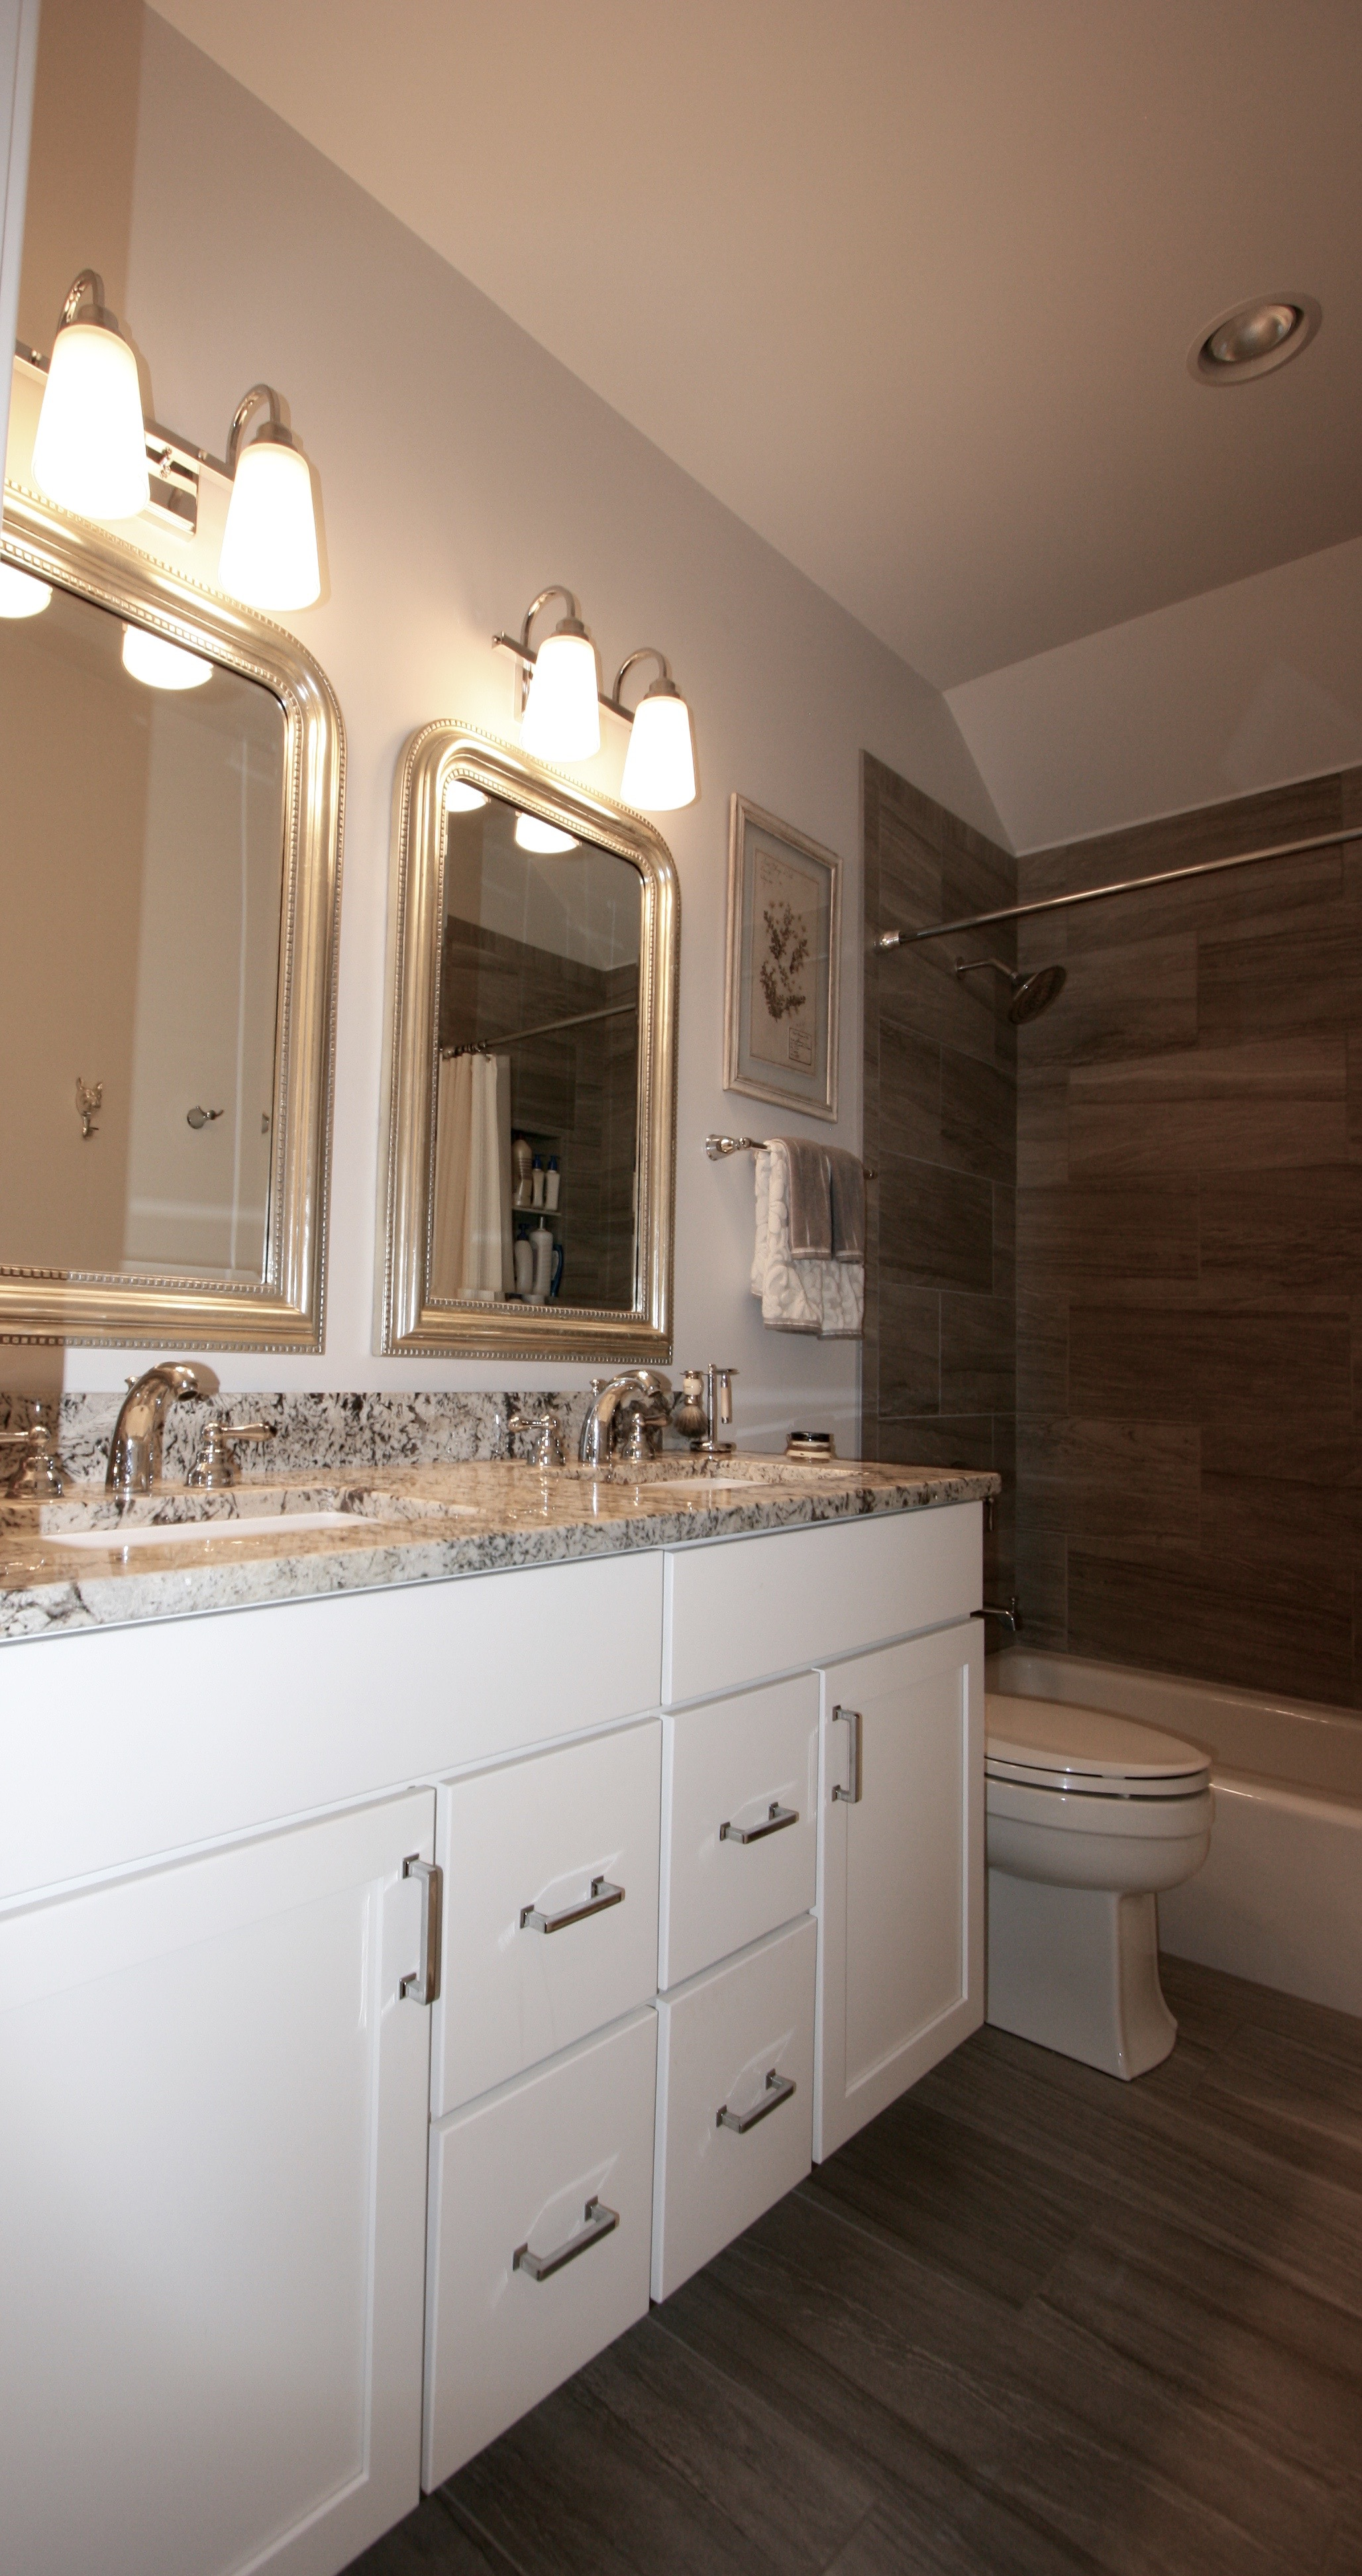 100 Bathroom Need Bathroom Remodel How Walk In Shower No Door Carldrogo Com Bathroom Remodel